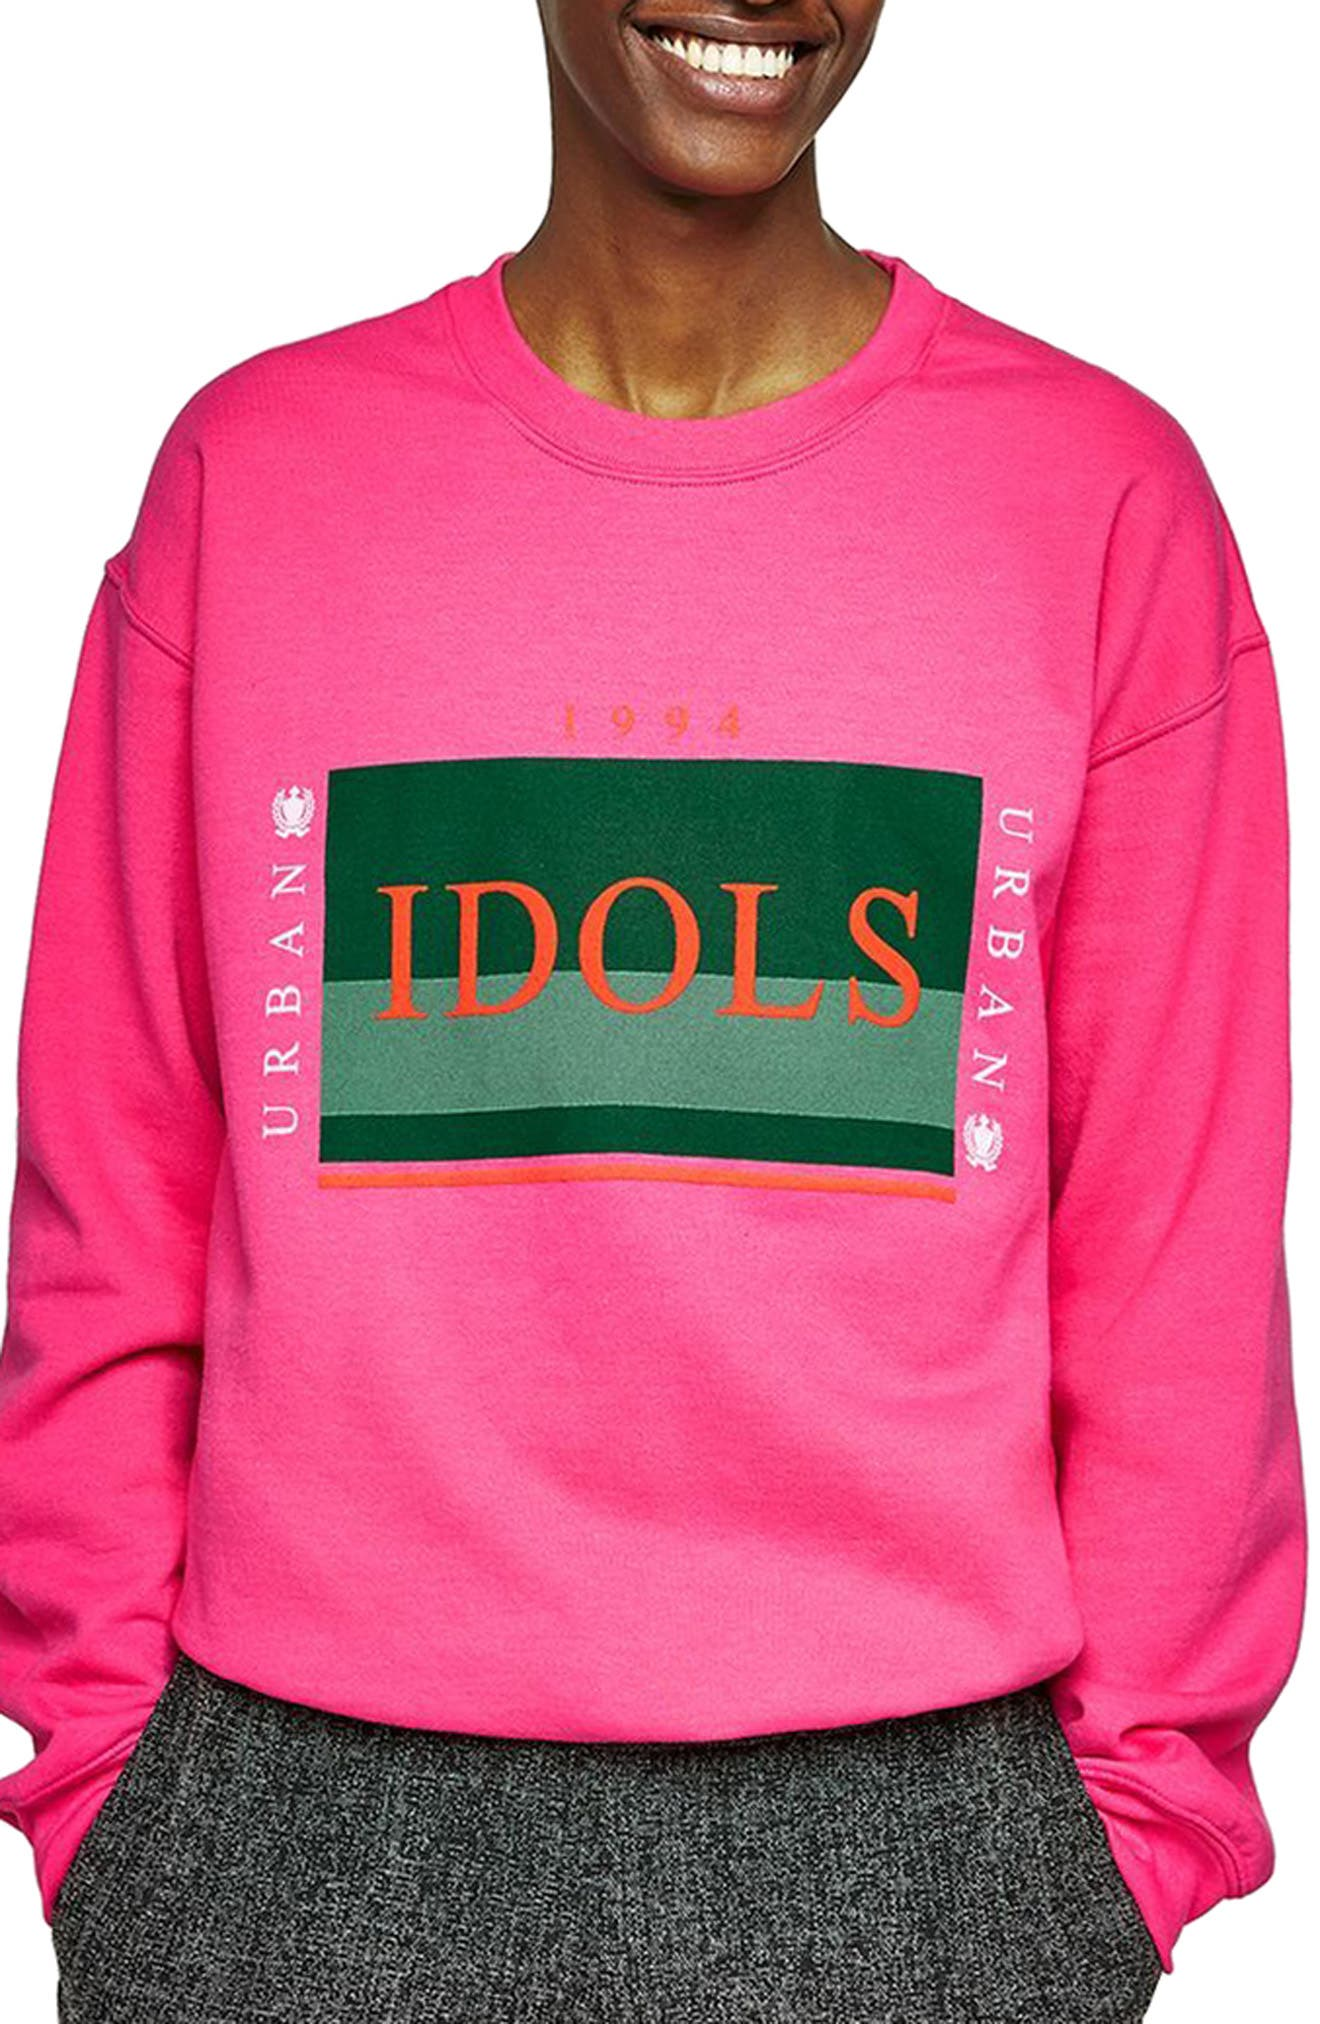 Alternate Image 1 Selected - Topman Urban Idols Graphic Sweatshirt